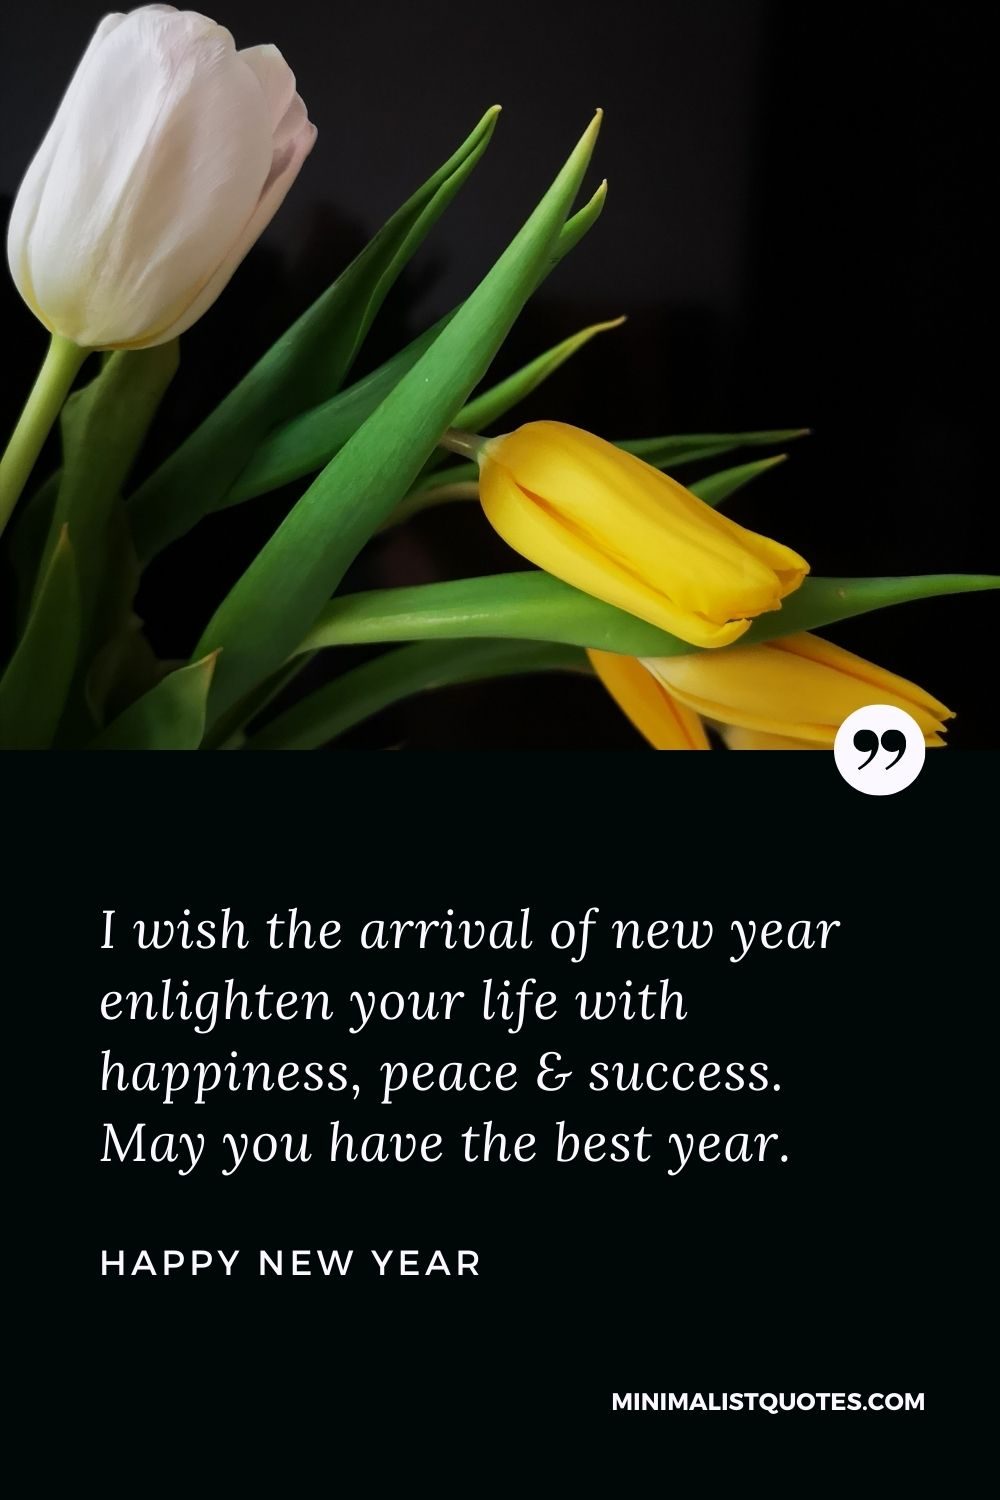 New Year Wish - I wish the arrival of new year enlighten your life with happiness, peace & success. May you have the best year.